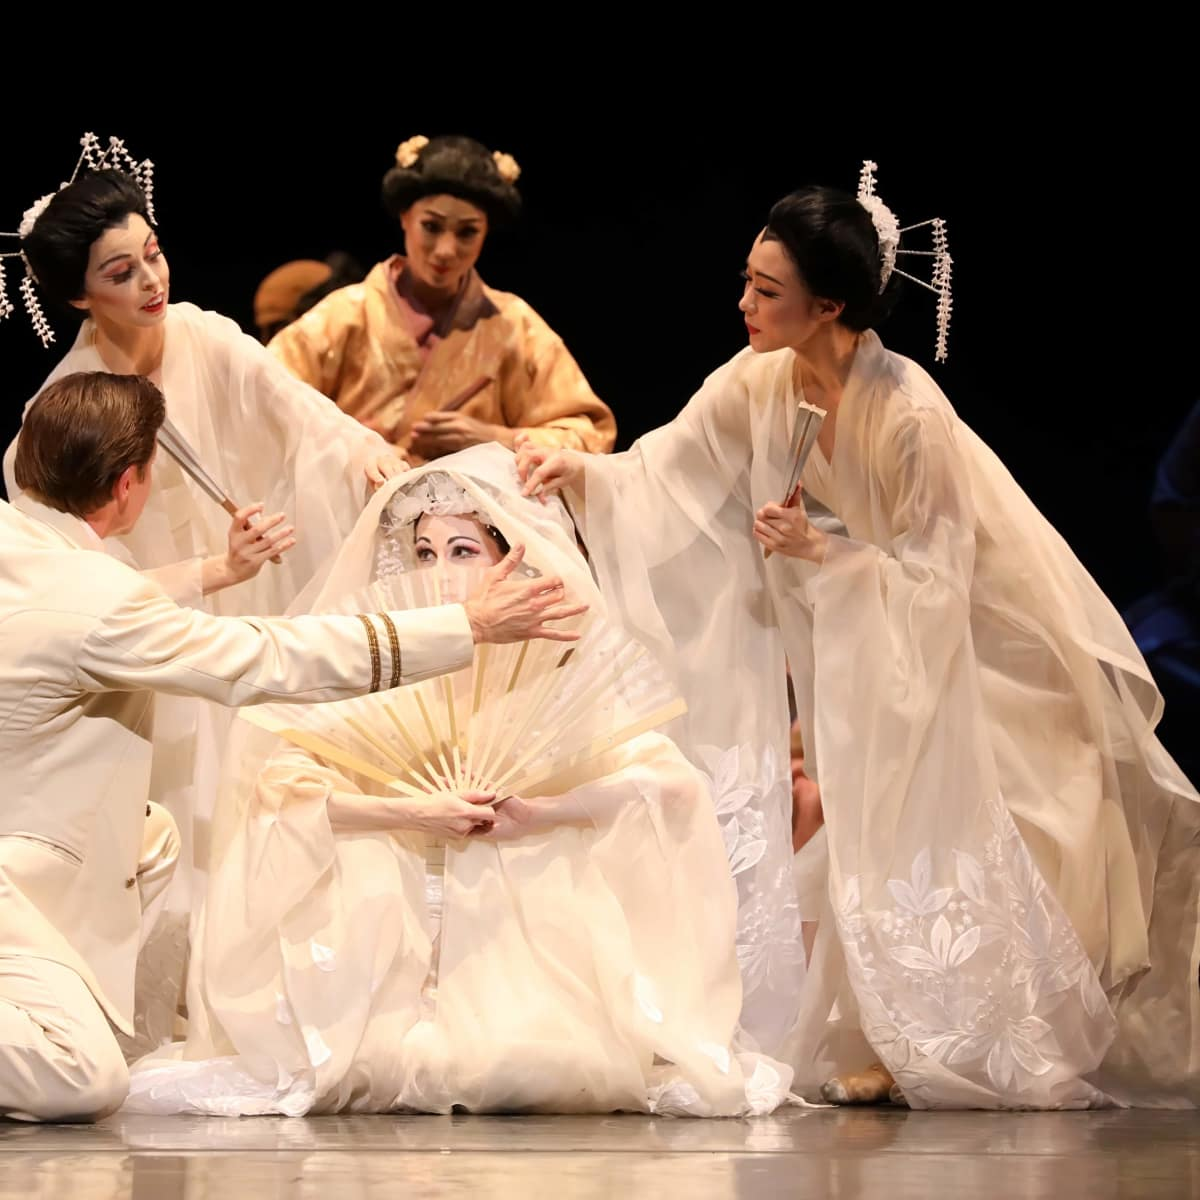 Houston Ballet, Madame Butterfly, Sept. 2016, company dancers